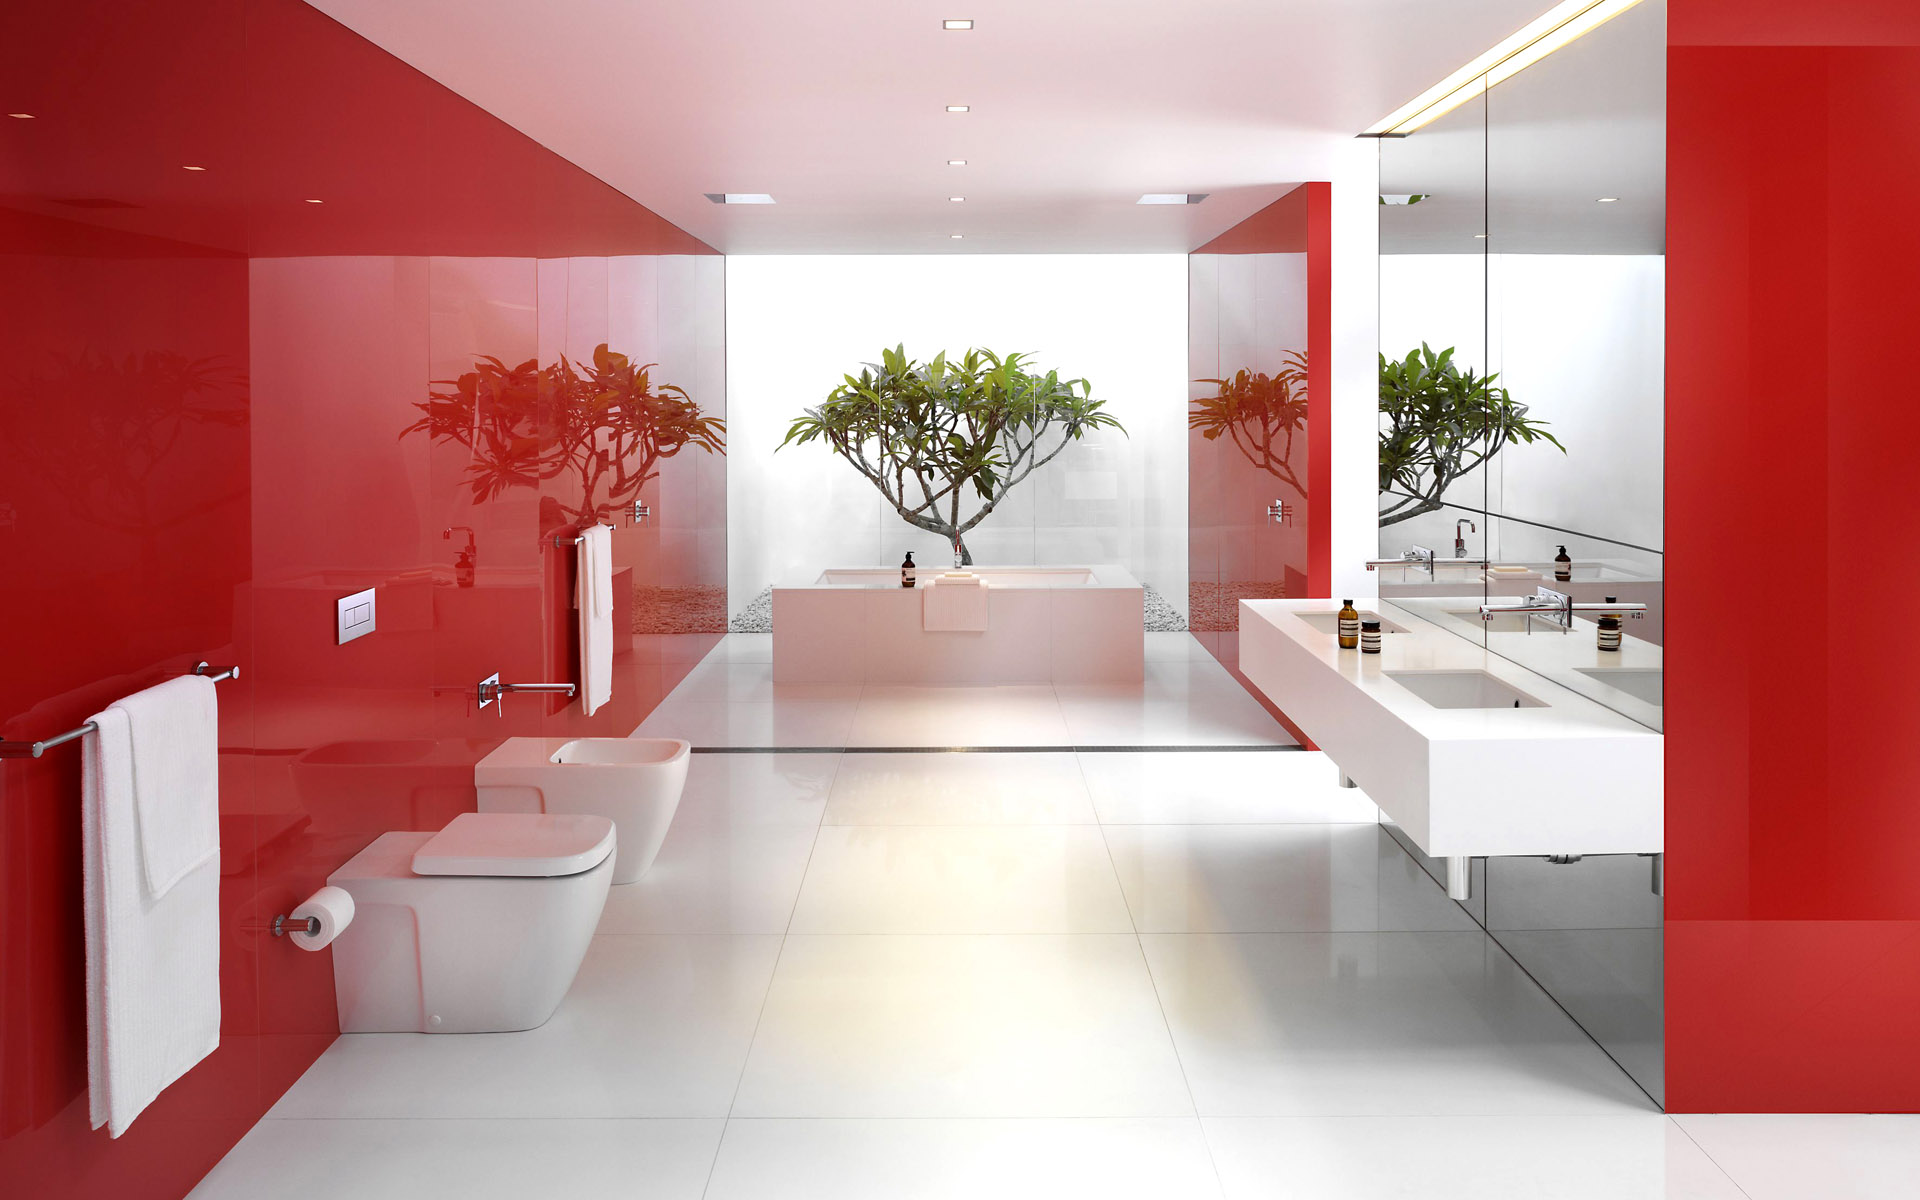 again t punch try bathroom do perfect out you can to small that think pack wall in tiny place bathrooms space treatment the wallpaper pin graphic is a daring